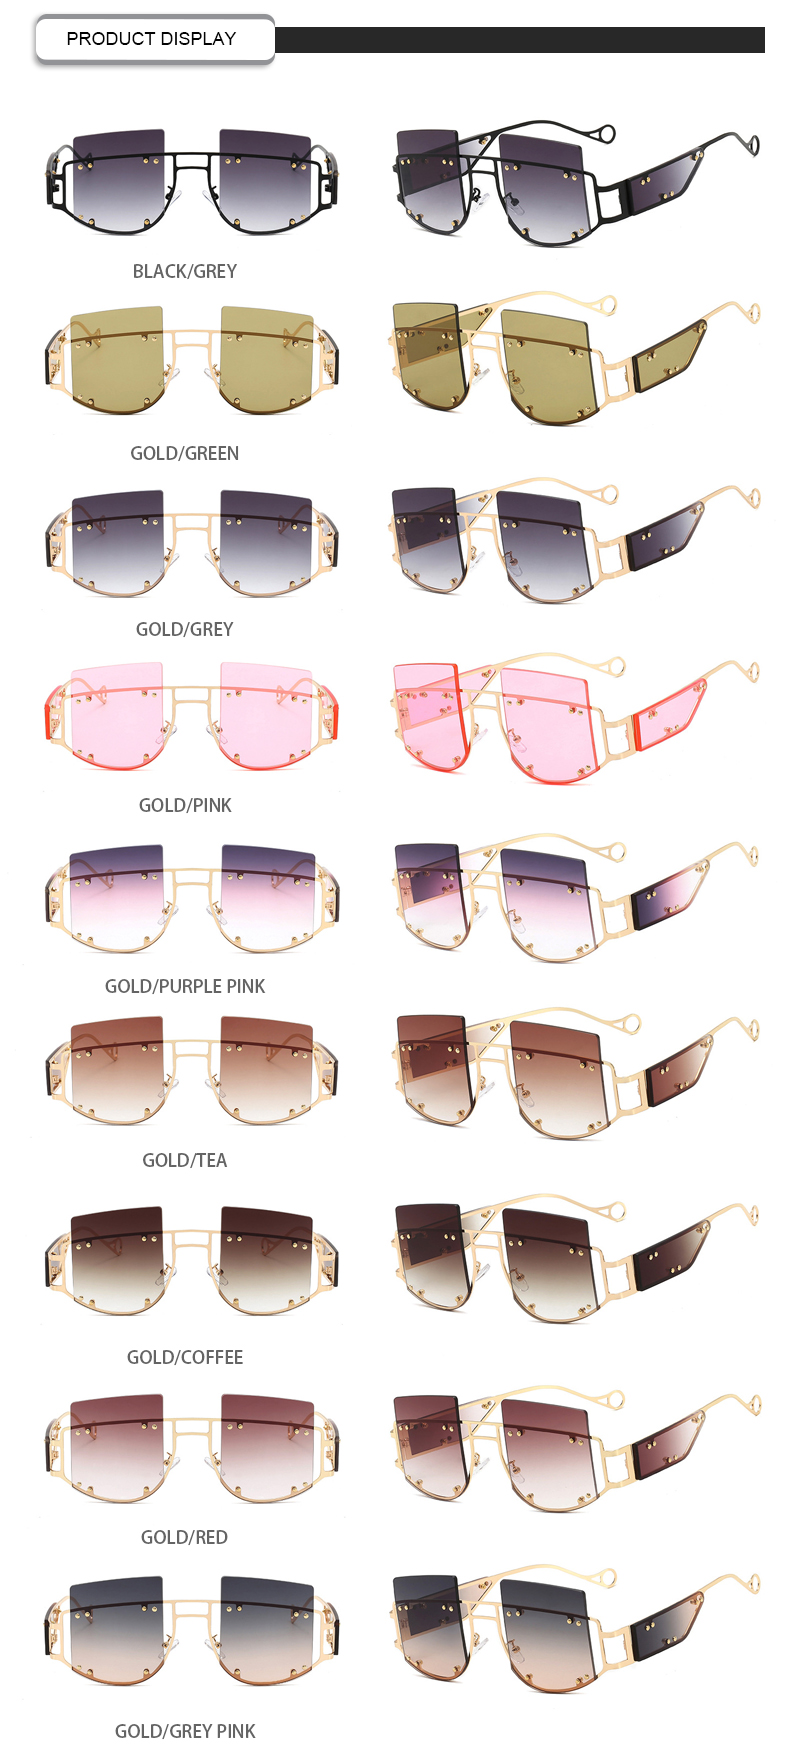 Fuqian stylish polaroid sunglasses price buy now for women-15